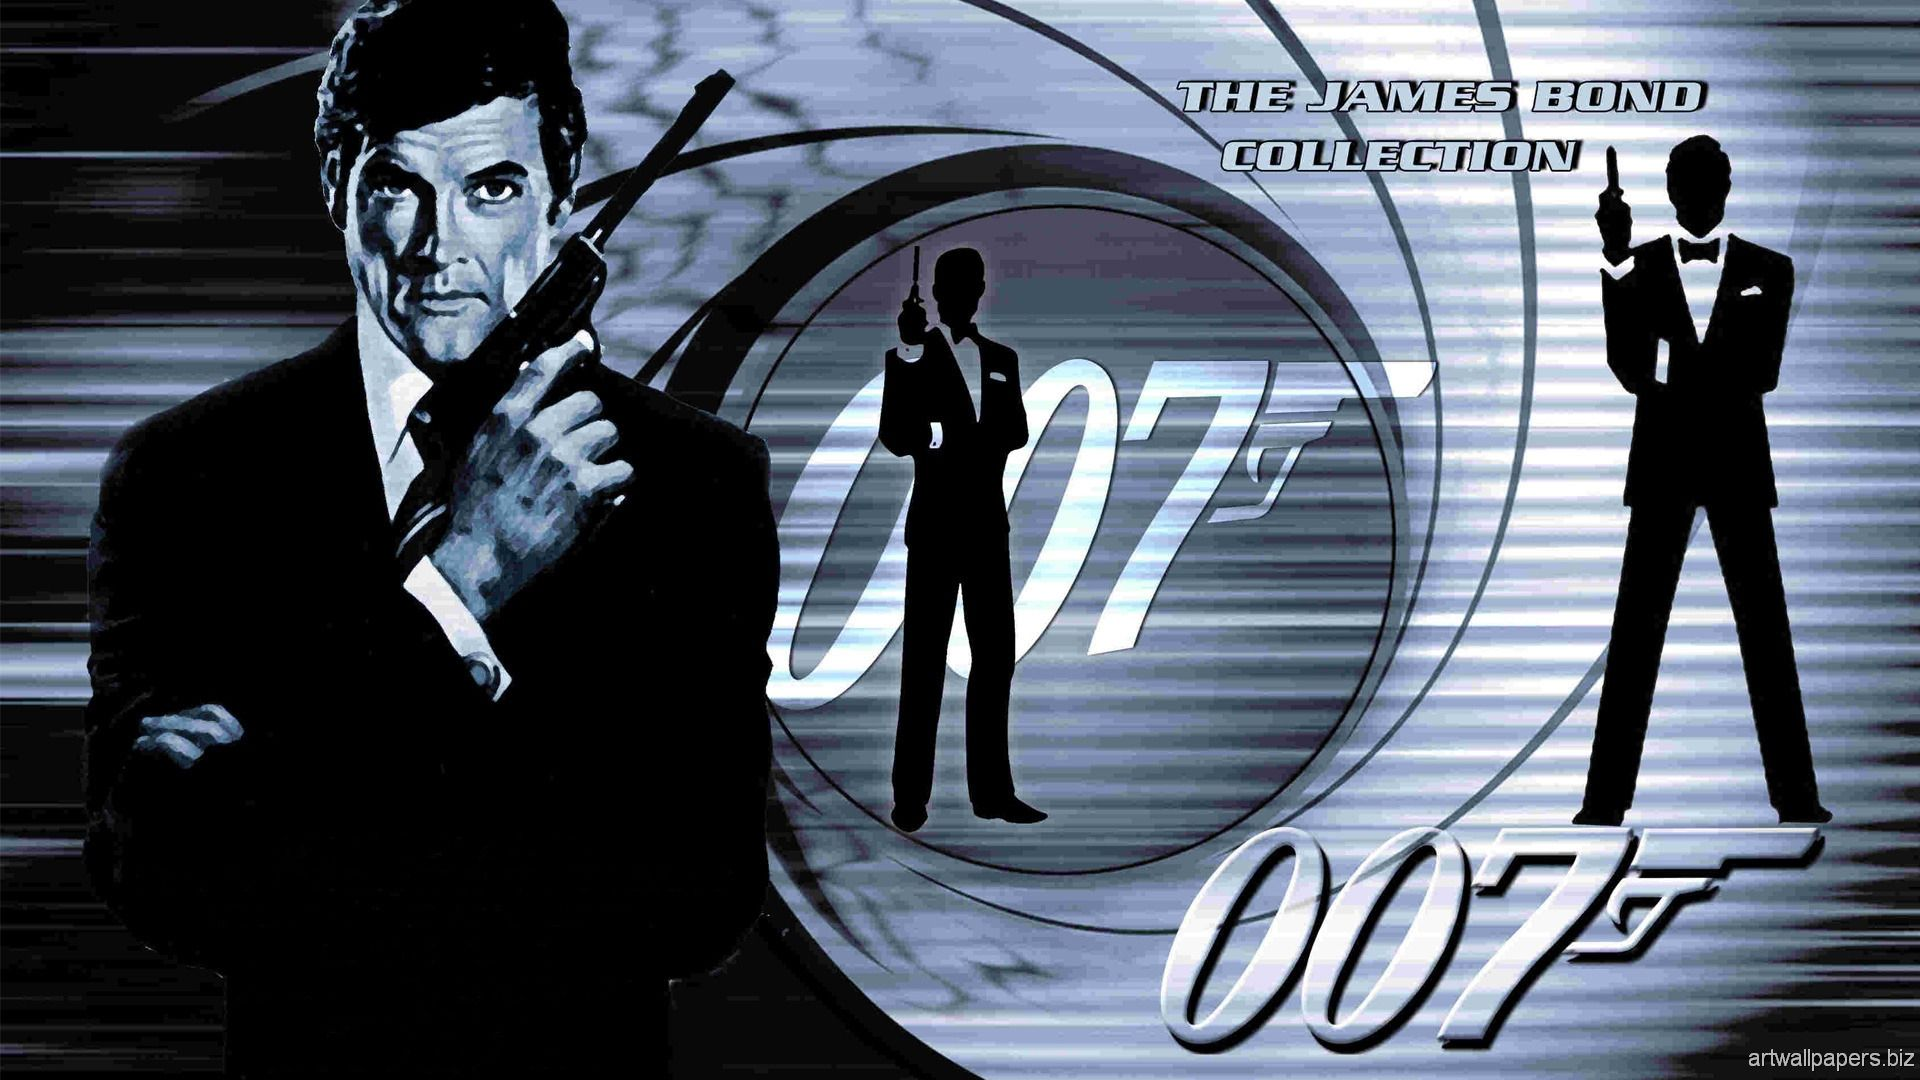 007 Images Movie Wallpapers Widescreen Hd Movie Wallpapers Desktop Backgrounds A Quintessential Classic 00 James Bond 007 James Bond Background Images